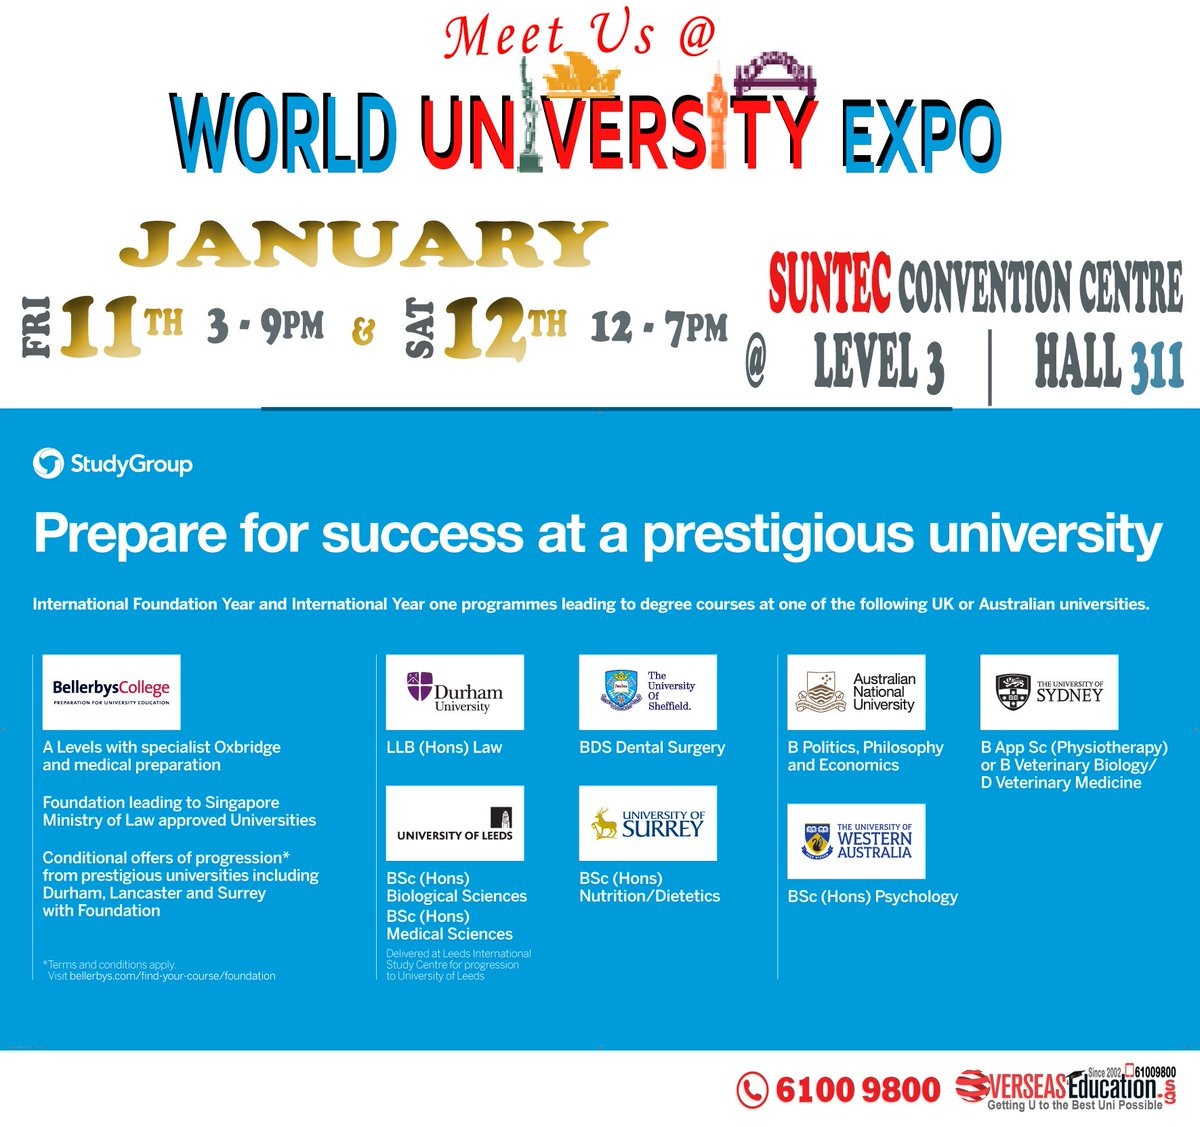 Study Foundation / Int'l Year One in UK or Australia? Meet Bellerbys, Durham ISC, UWA Fdn etc at our WorldUniExpo on Fri 11 Jan 3-9pm & Sat 12 Jan 12-7pm at Suntec Level 3 Hall 311. For more info, visit http://fdn.OverseasEducation.sg or call 61009800 #ukdegree #ukfdn #ukschoolspic.twitter.com/GNLUnZD9HX